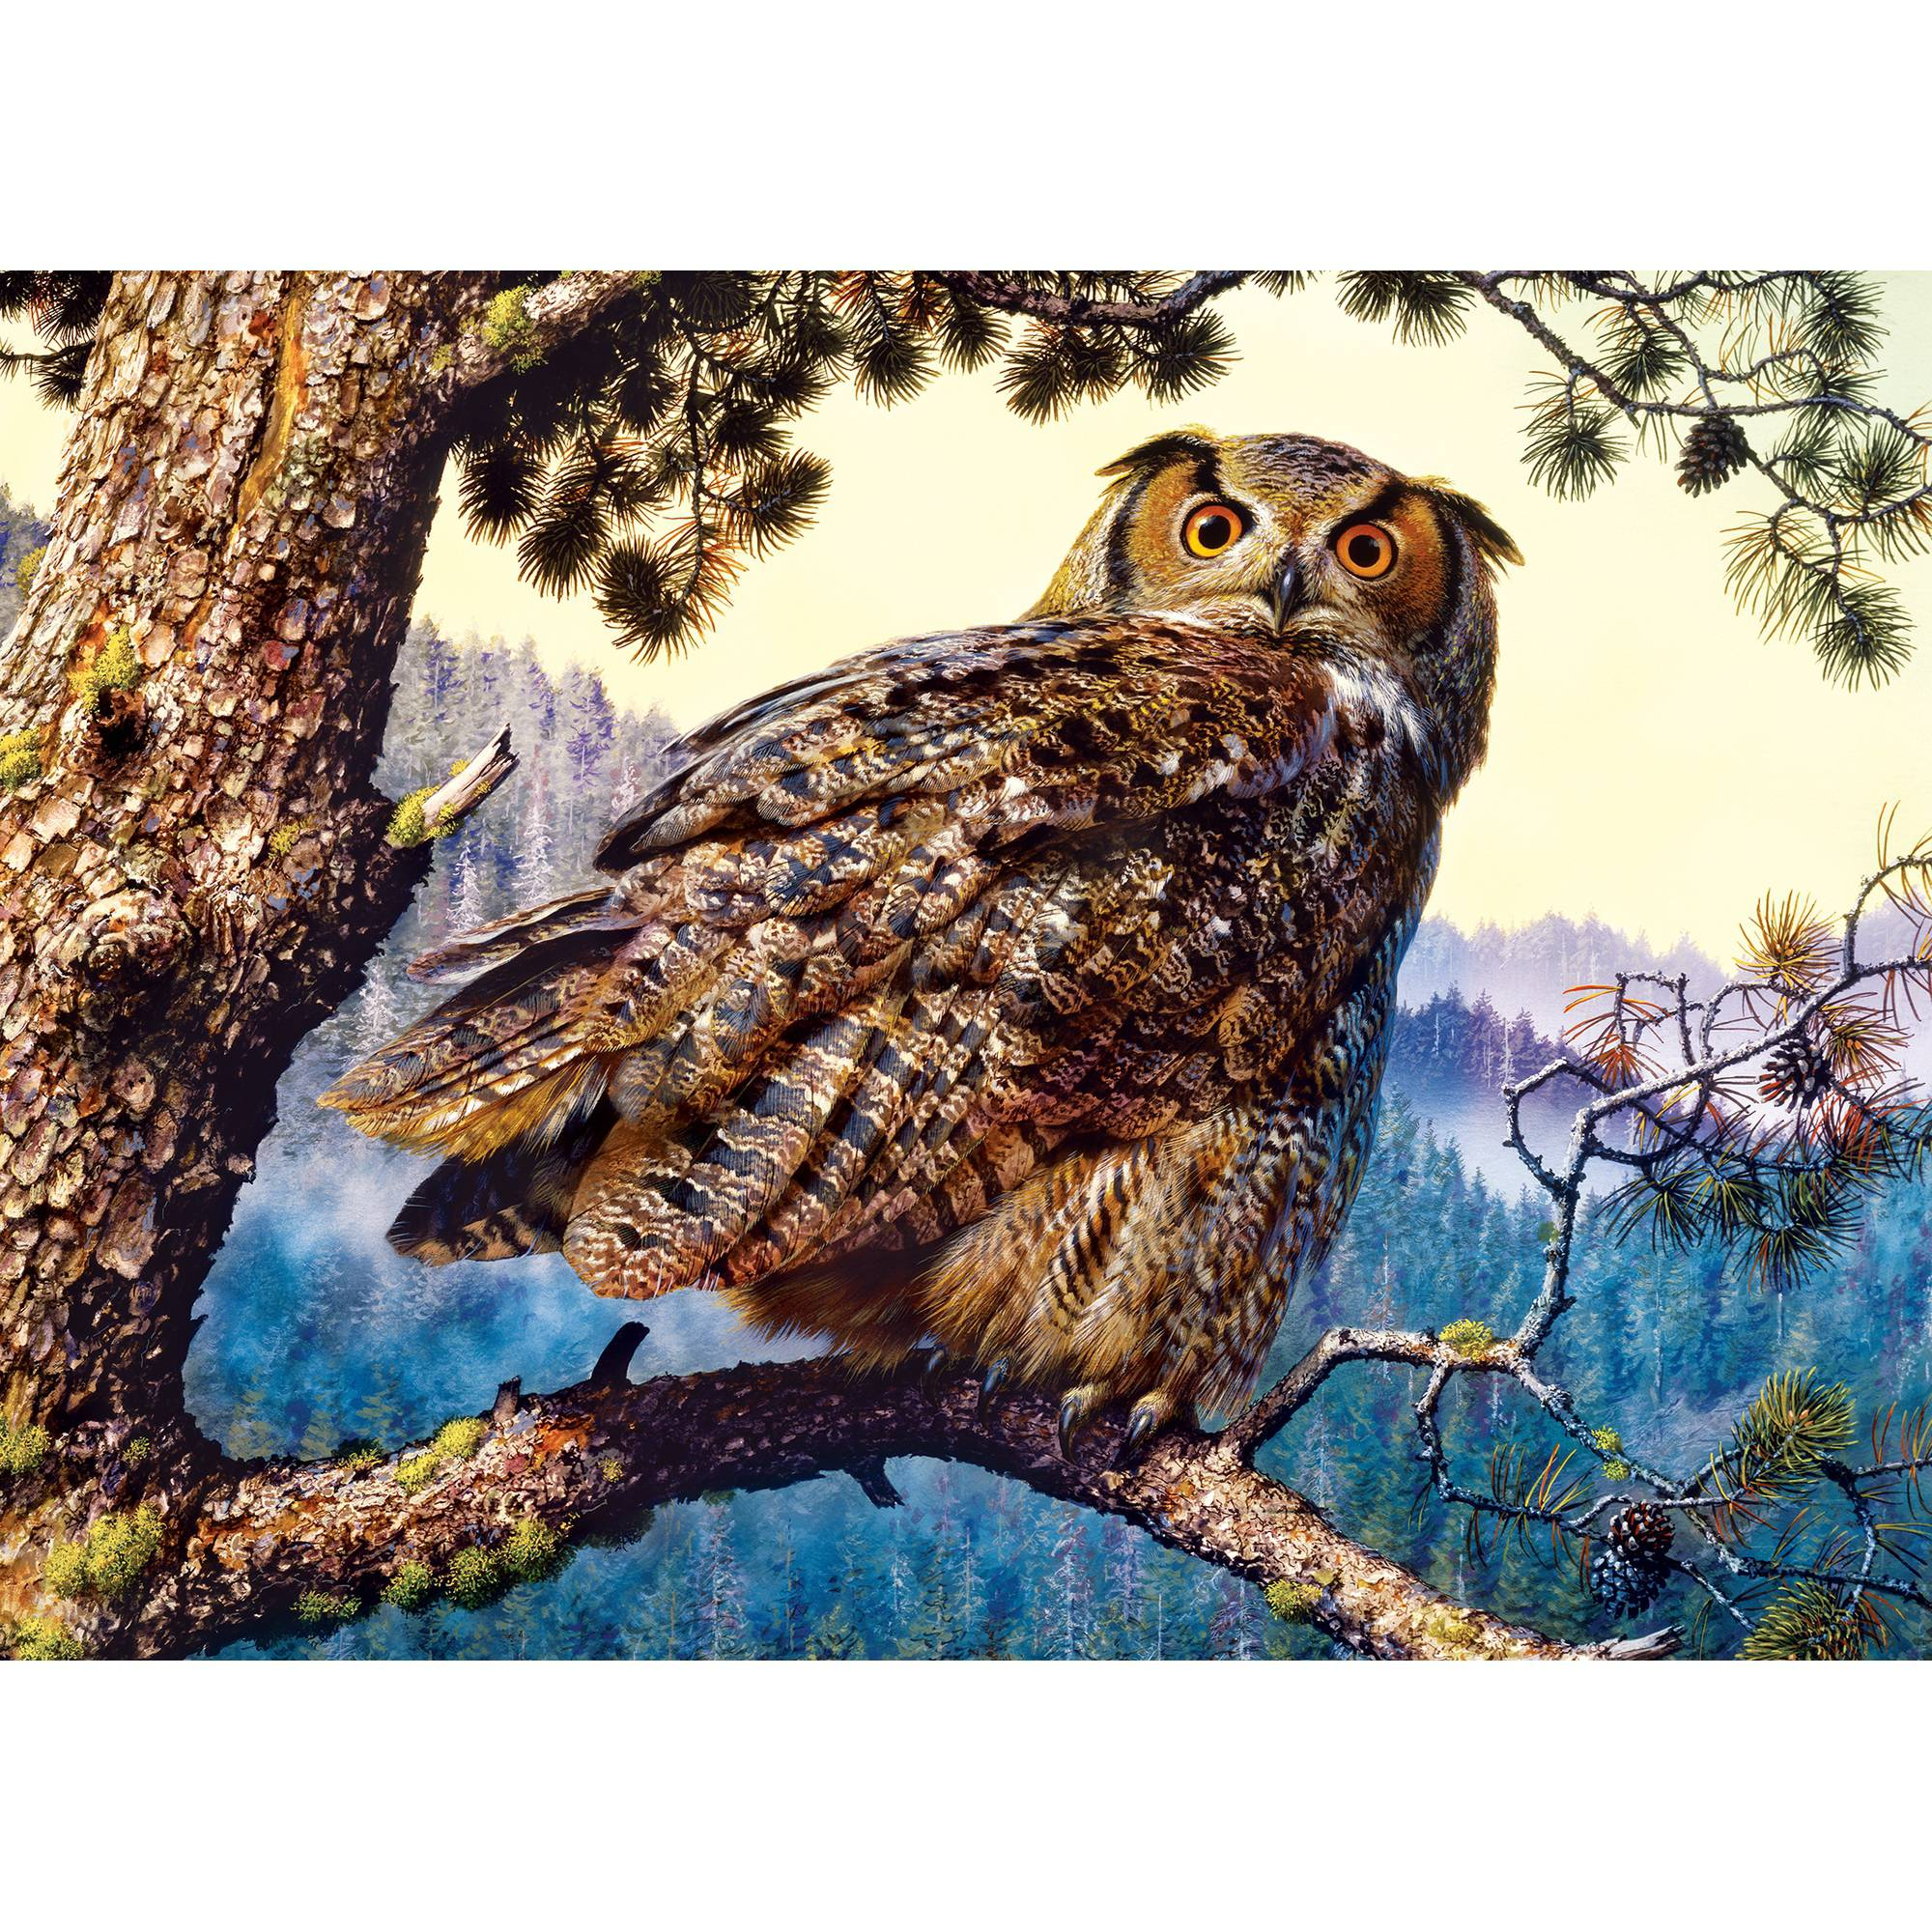 MasterPieces Great Horned Owl 1000 Piece Puzzle